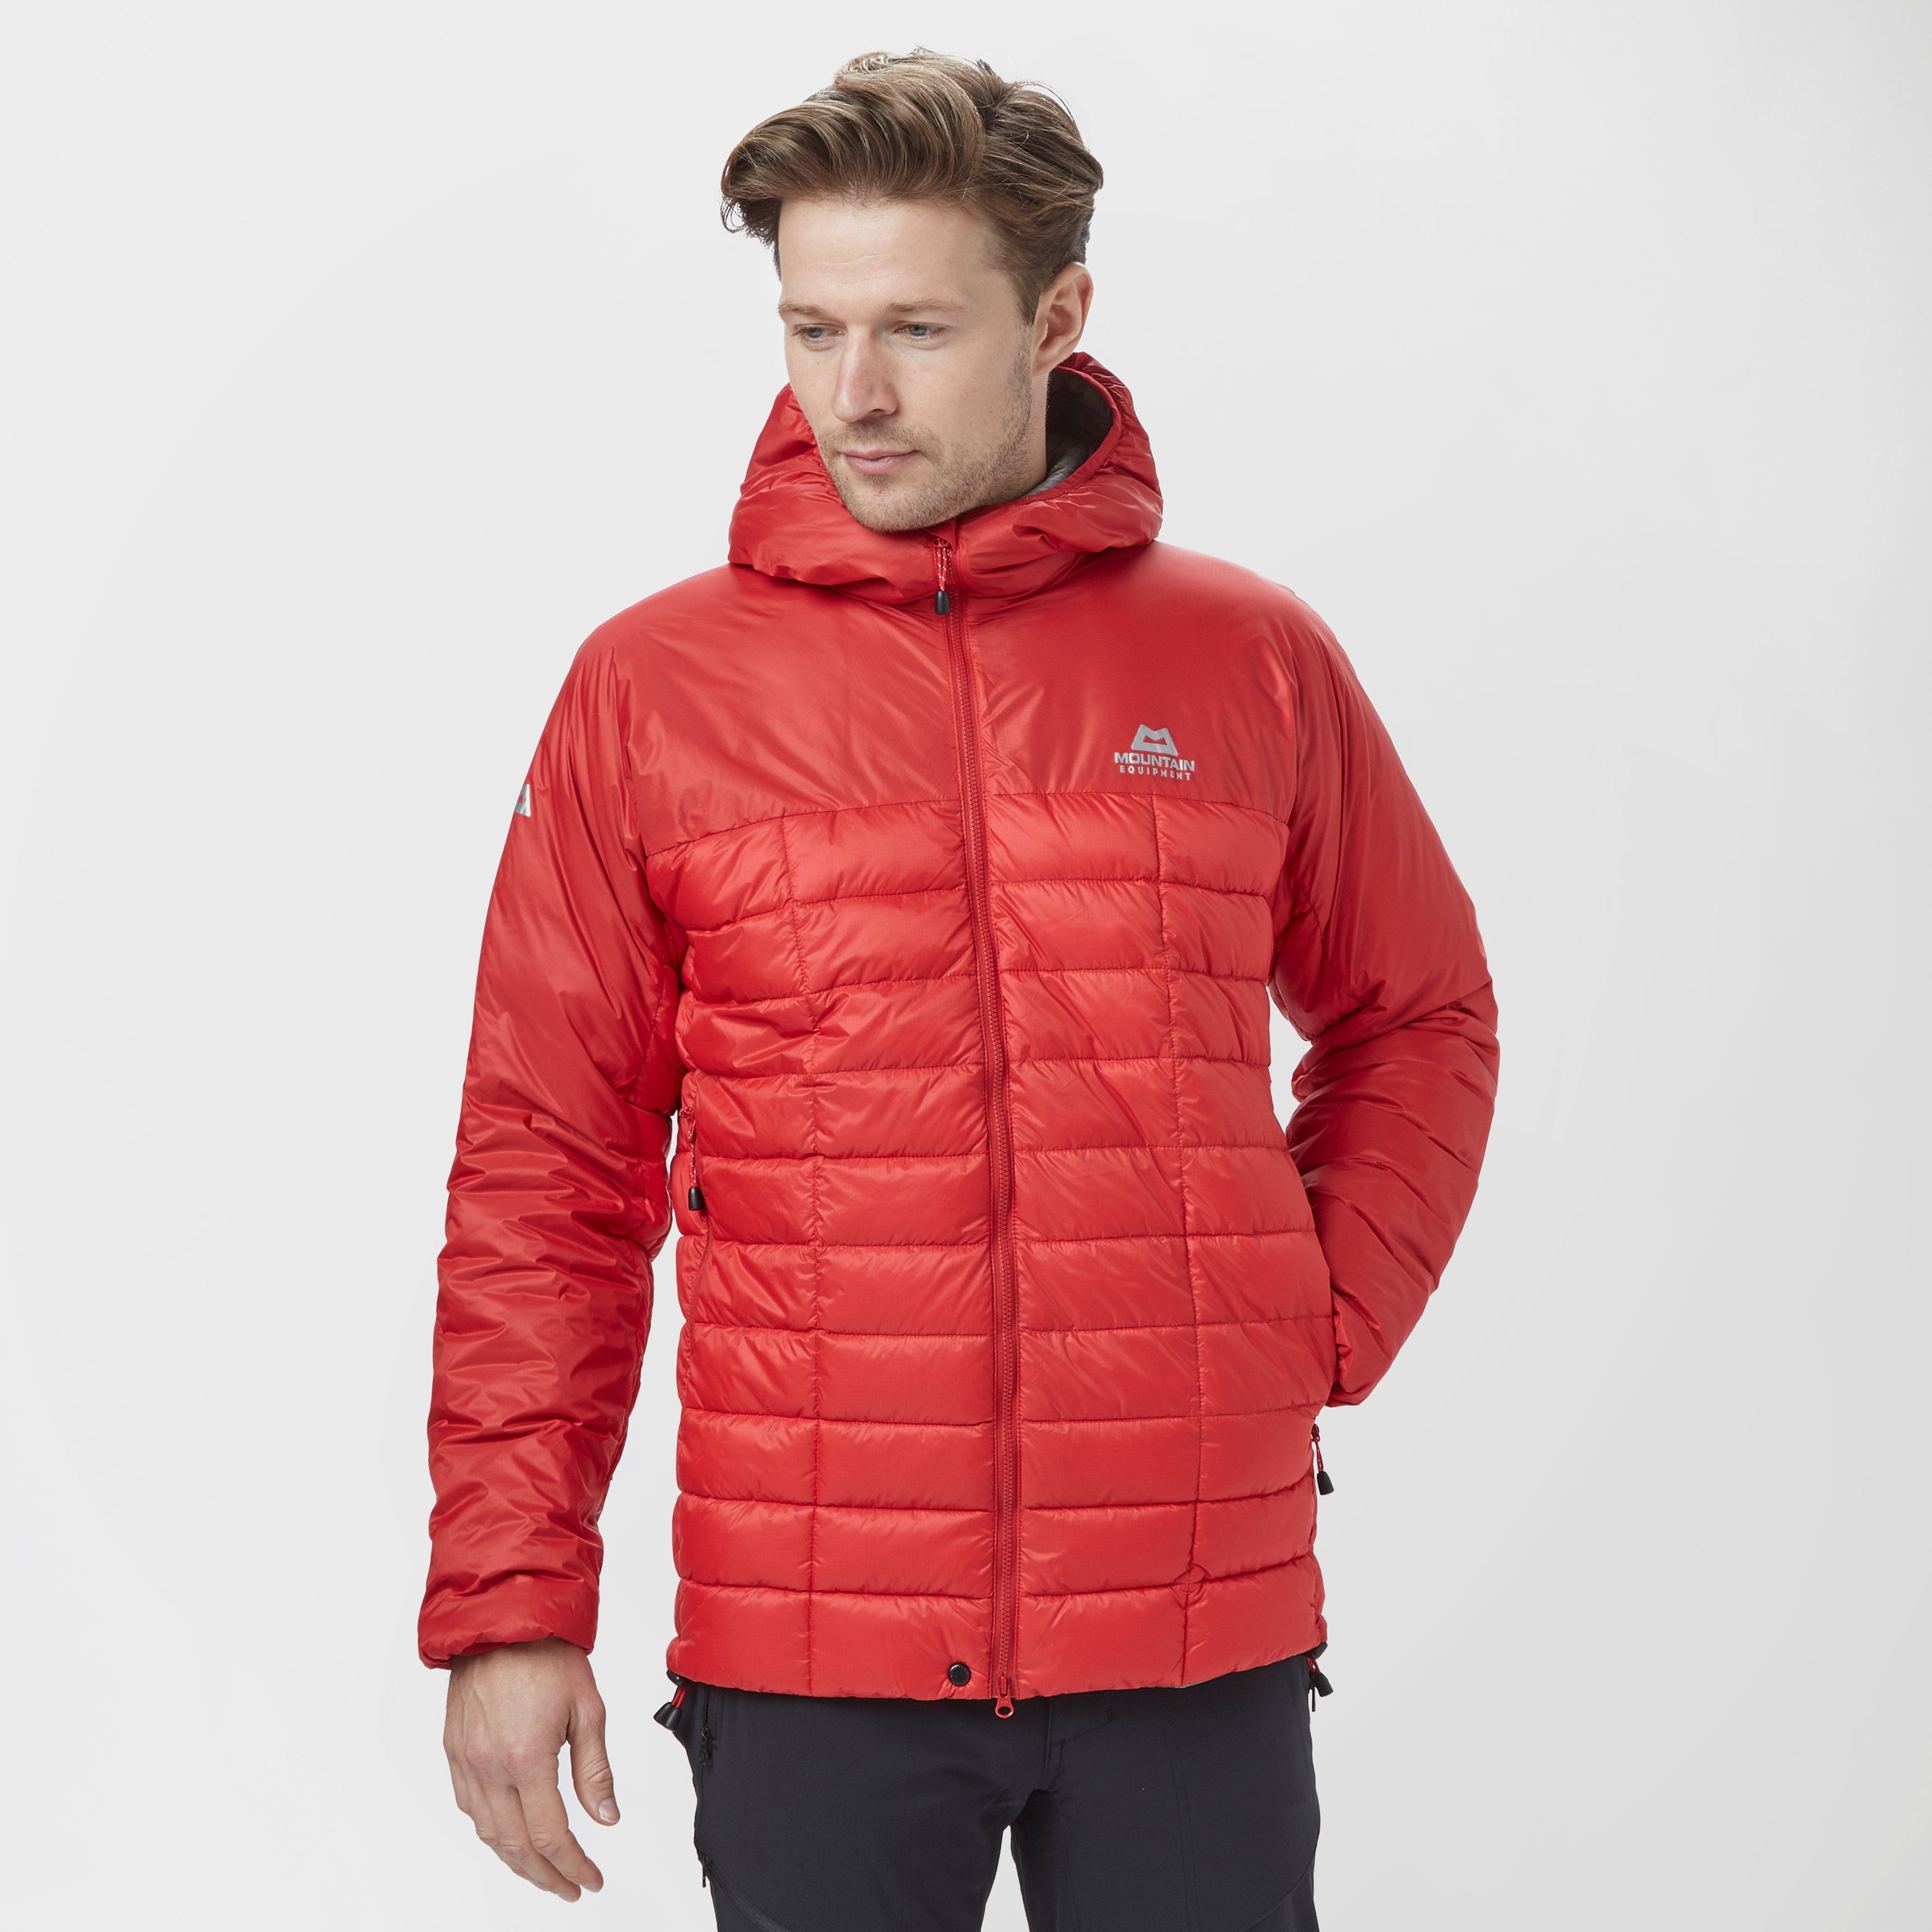 MOUNTAIN EQUIPMENT Men's Superflux Insulated Jacket